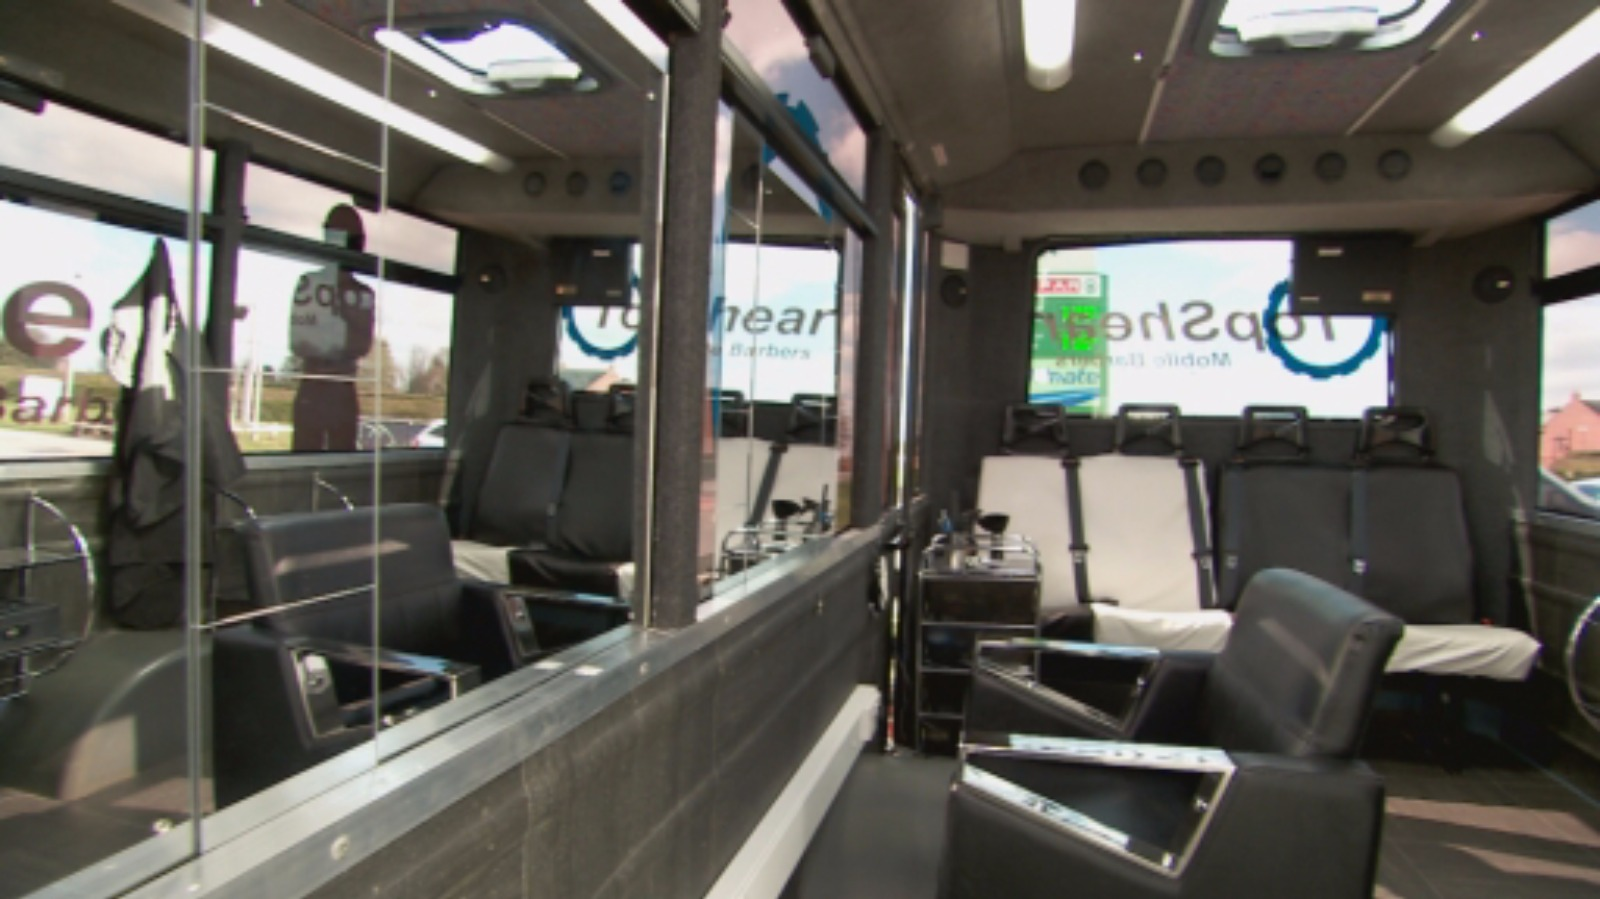 Old bus gets new life as mobile barbers border itv news for Bus mallemort salon